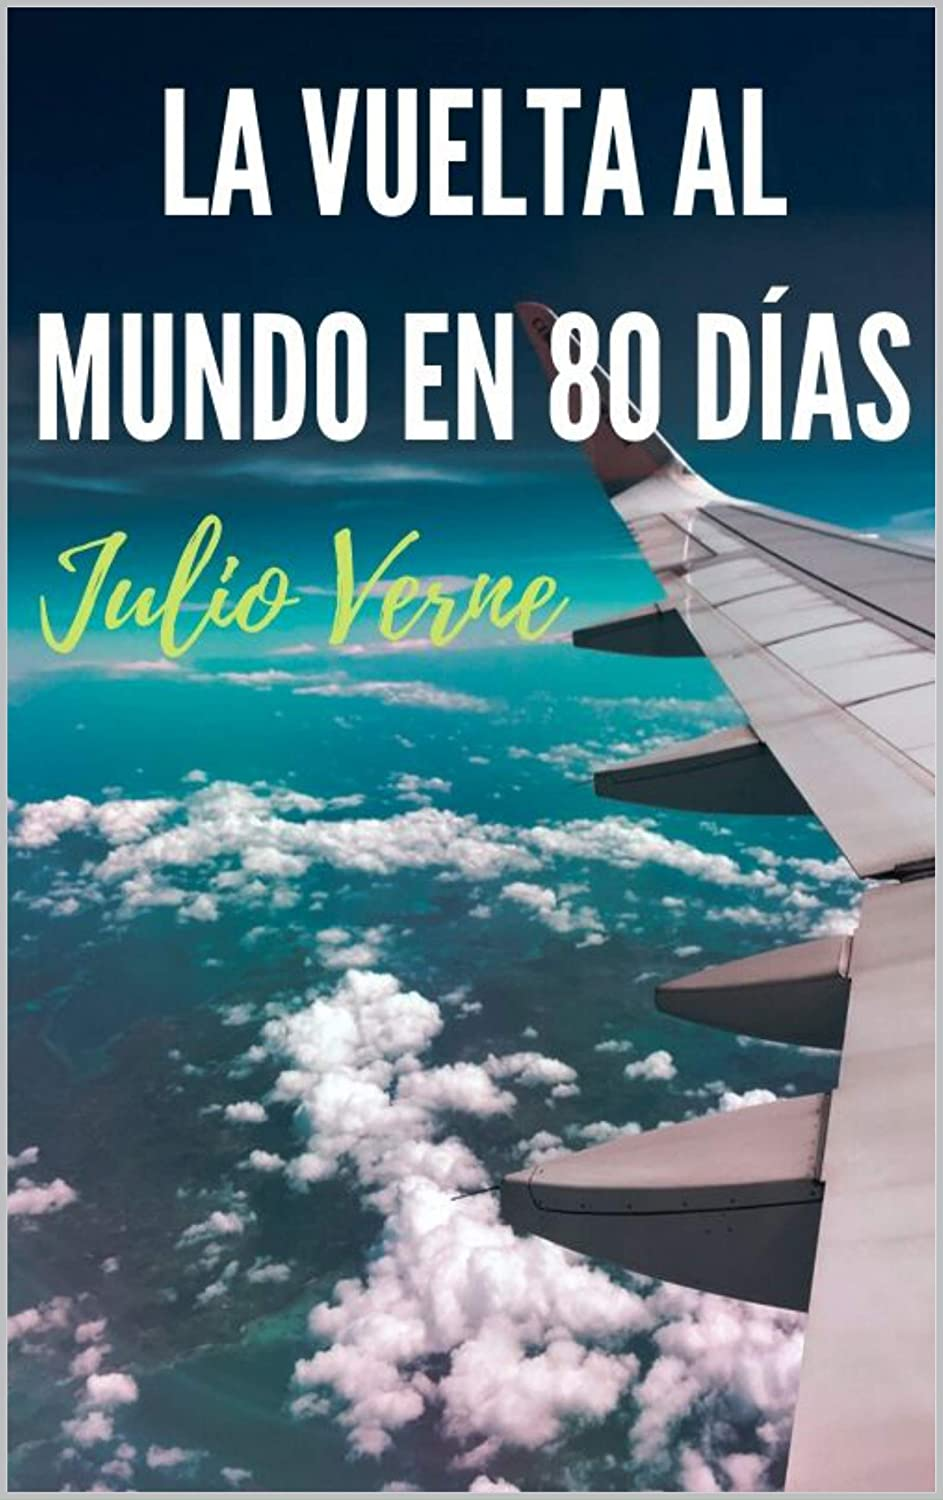 La vuelta al mundo en 80 días eBook: Verne, Julio: Amazon.es ...